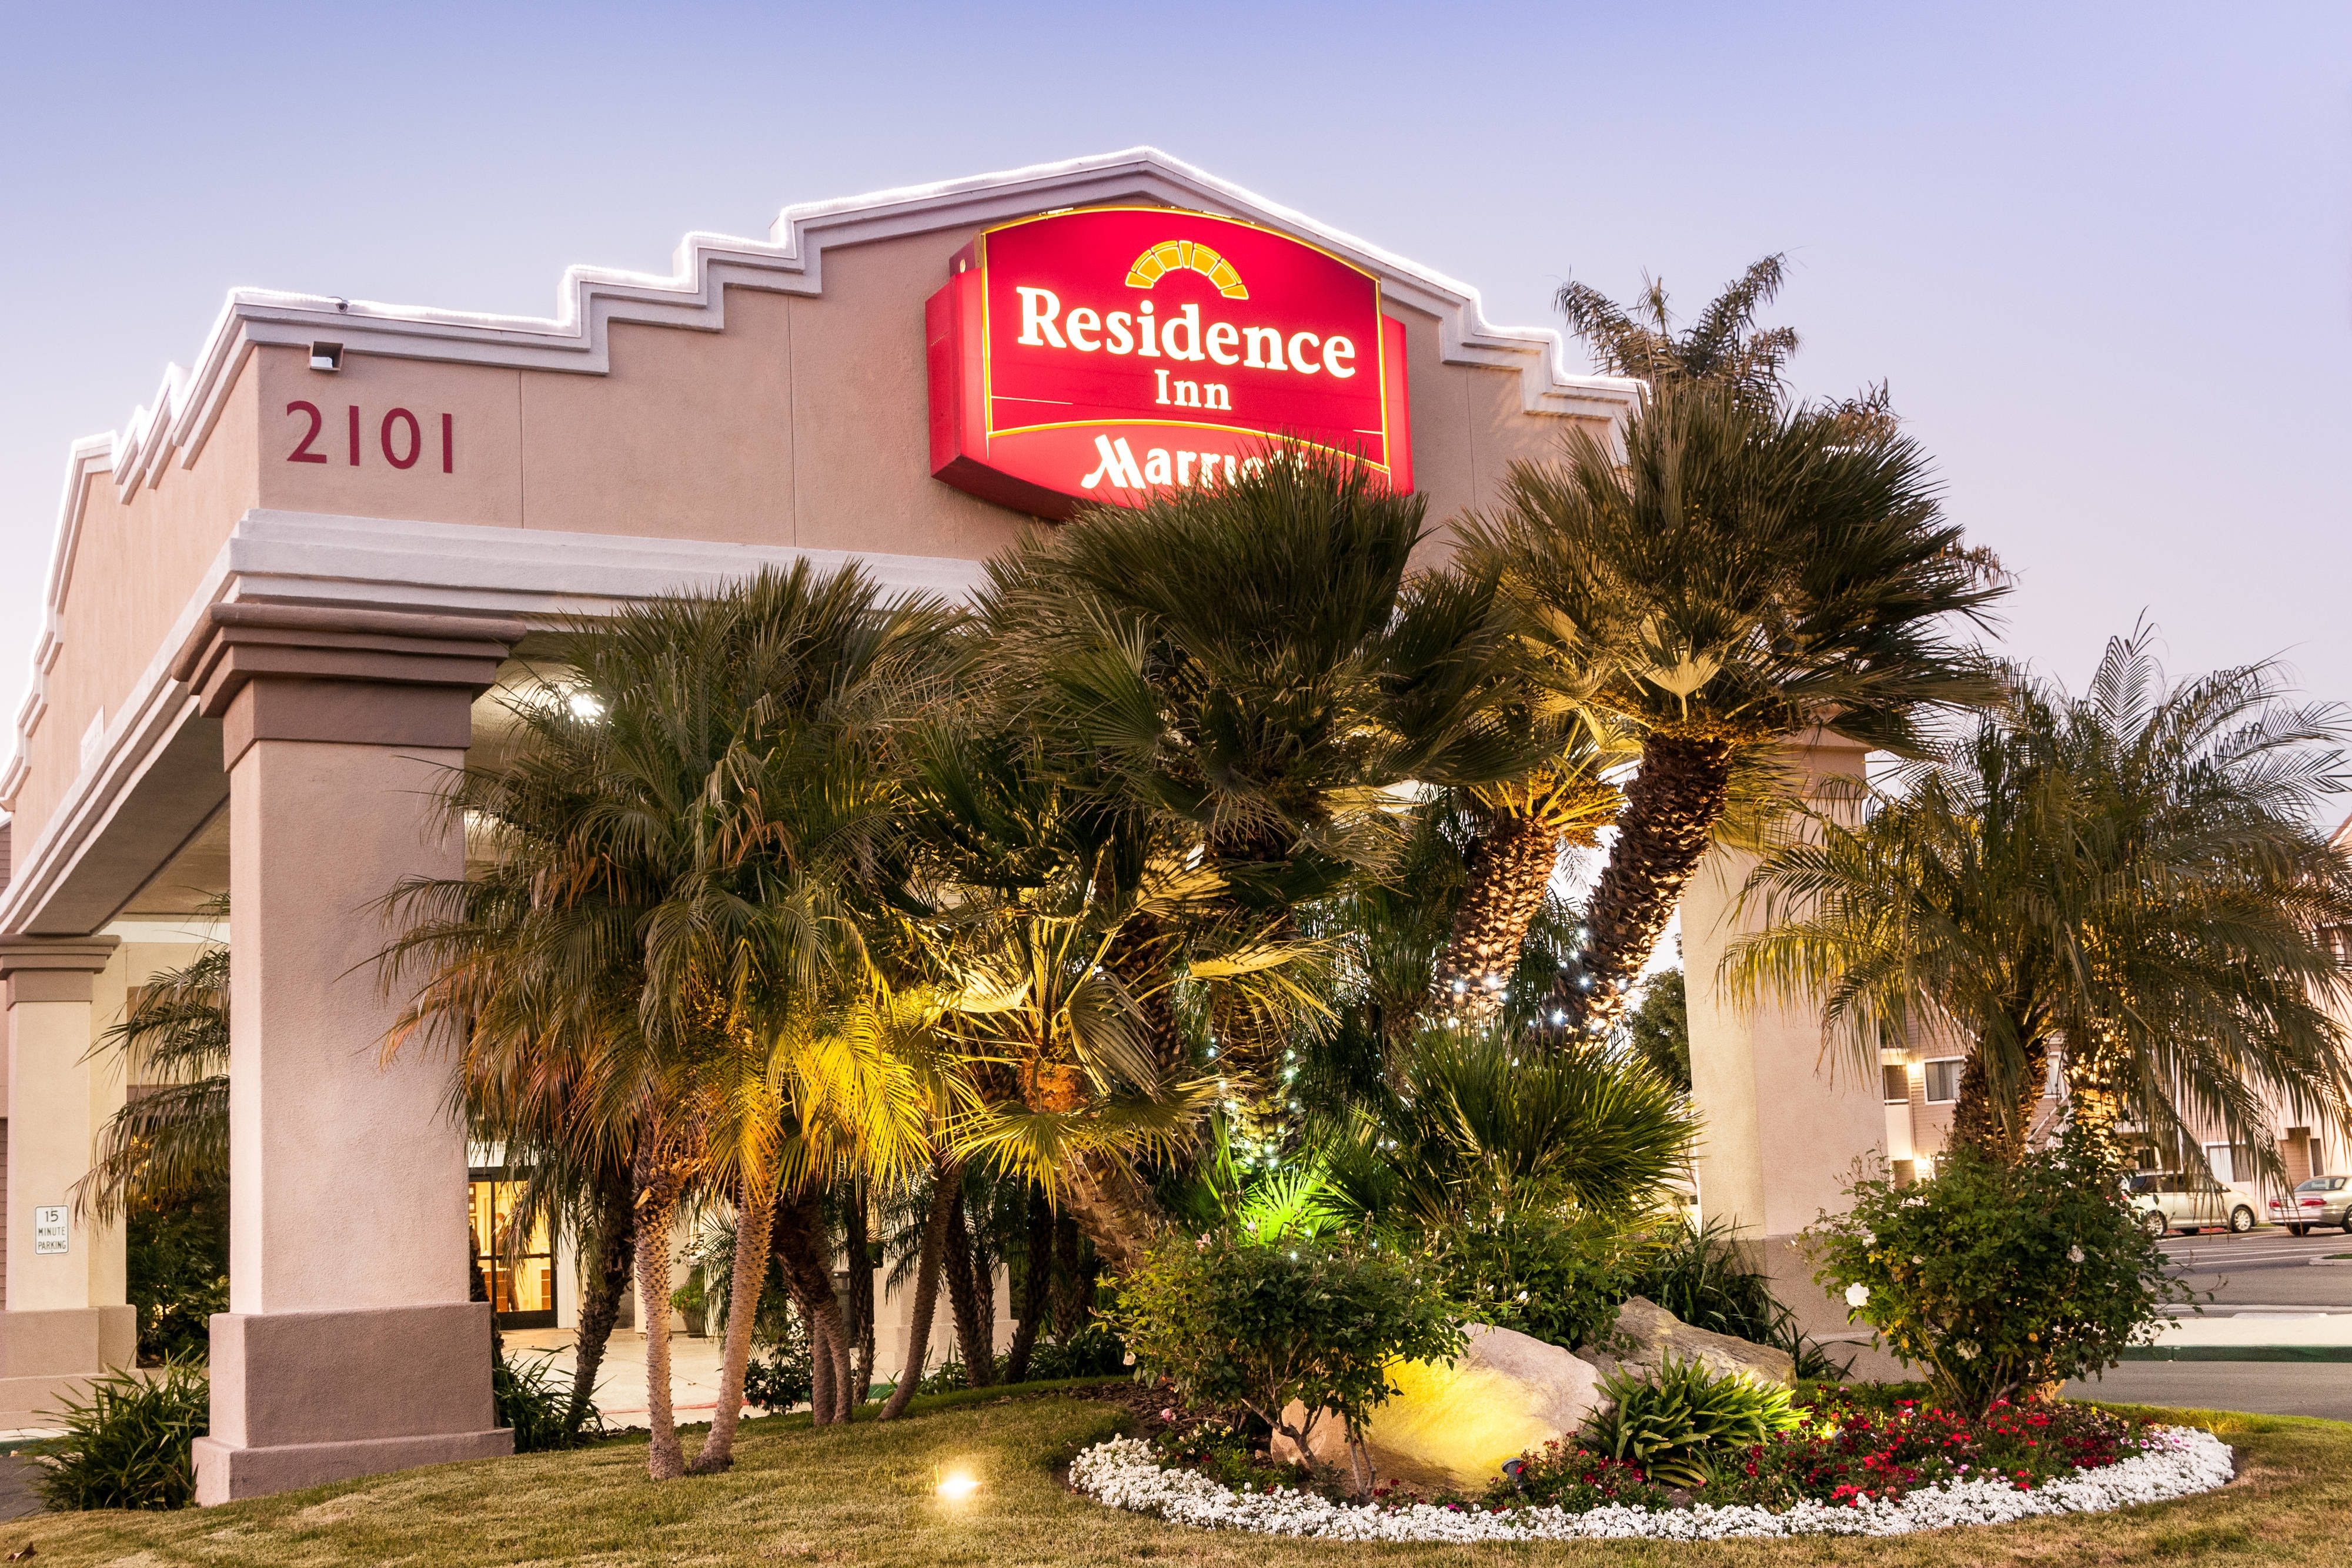 Residence Inn by Marriott River Ridge